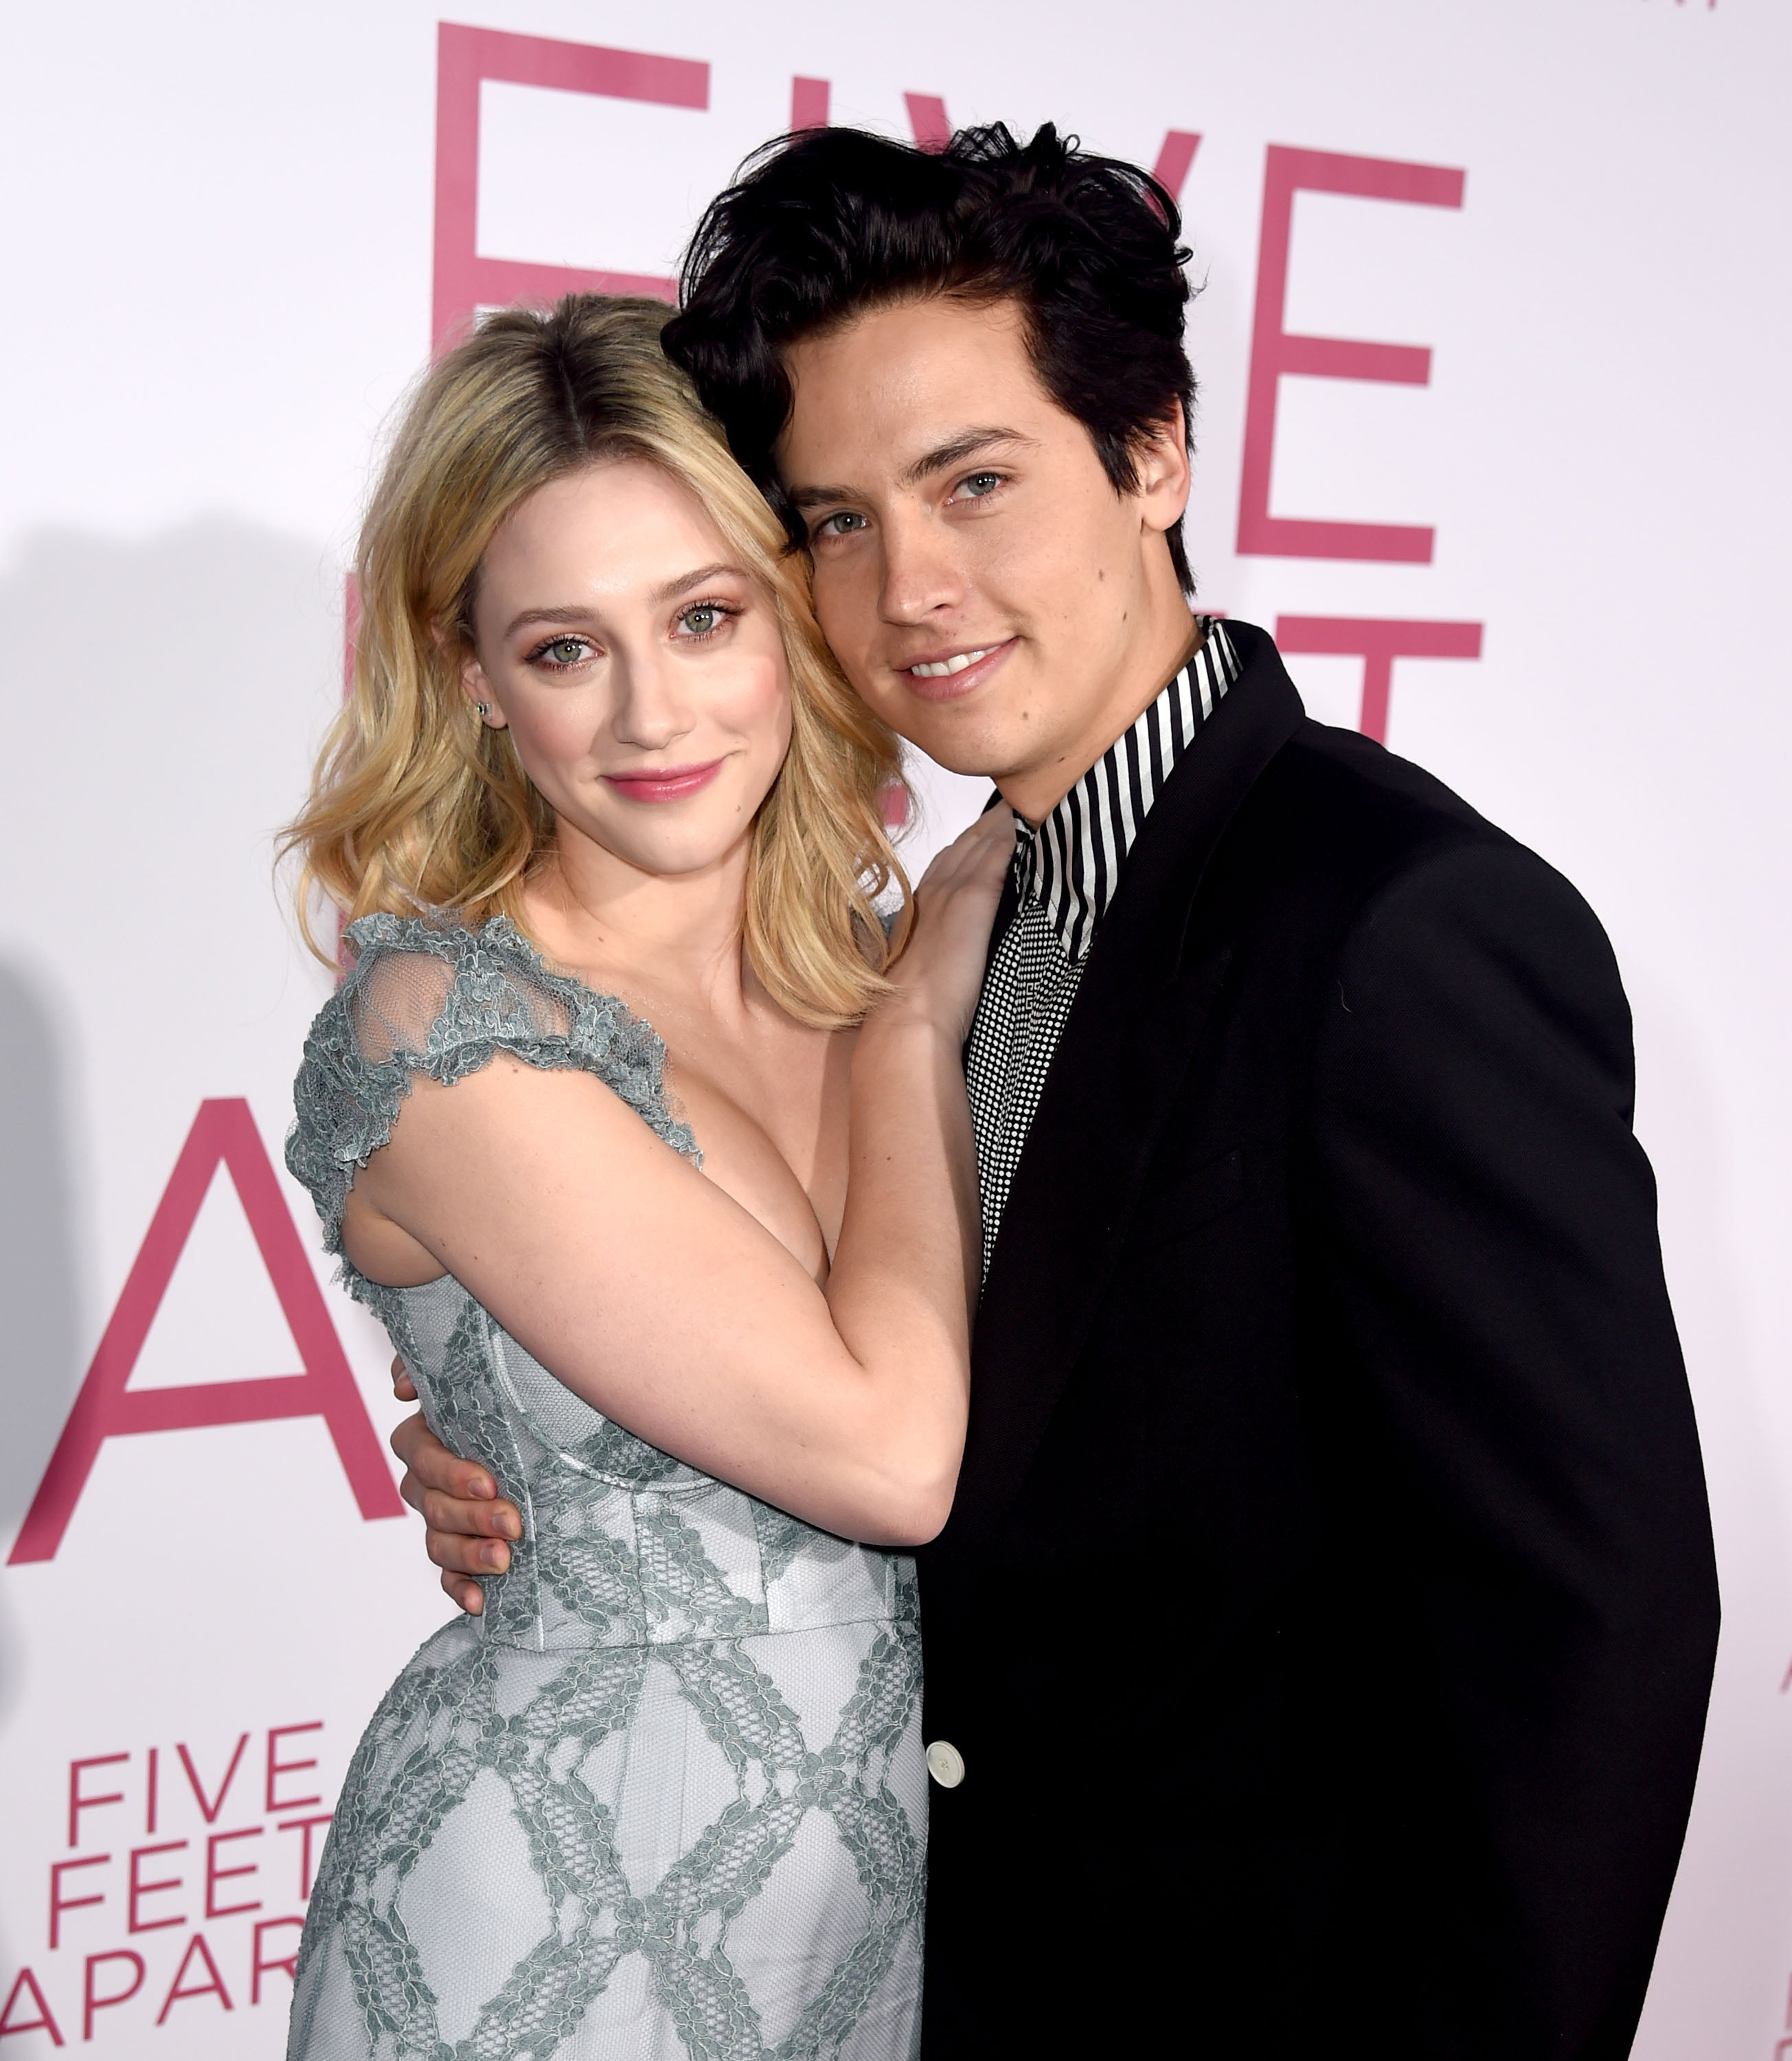 Cole Sprouse Celebrates Lili Reinhart's Birthday With PDA Pics That Will Make Bughead Fans Swoon